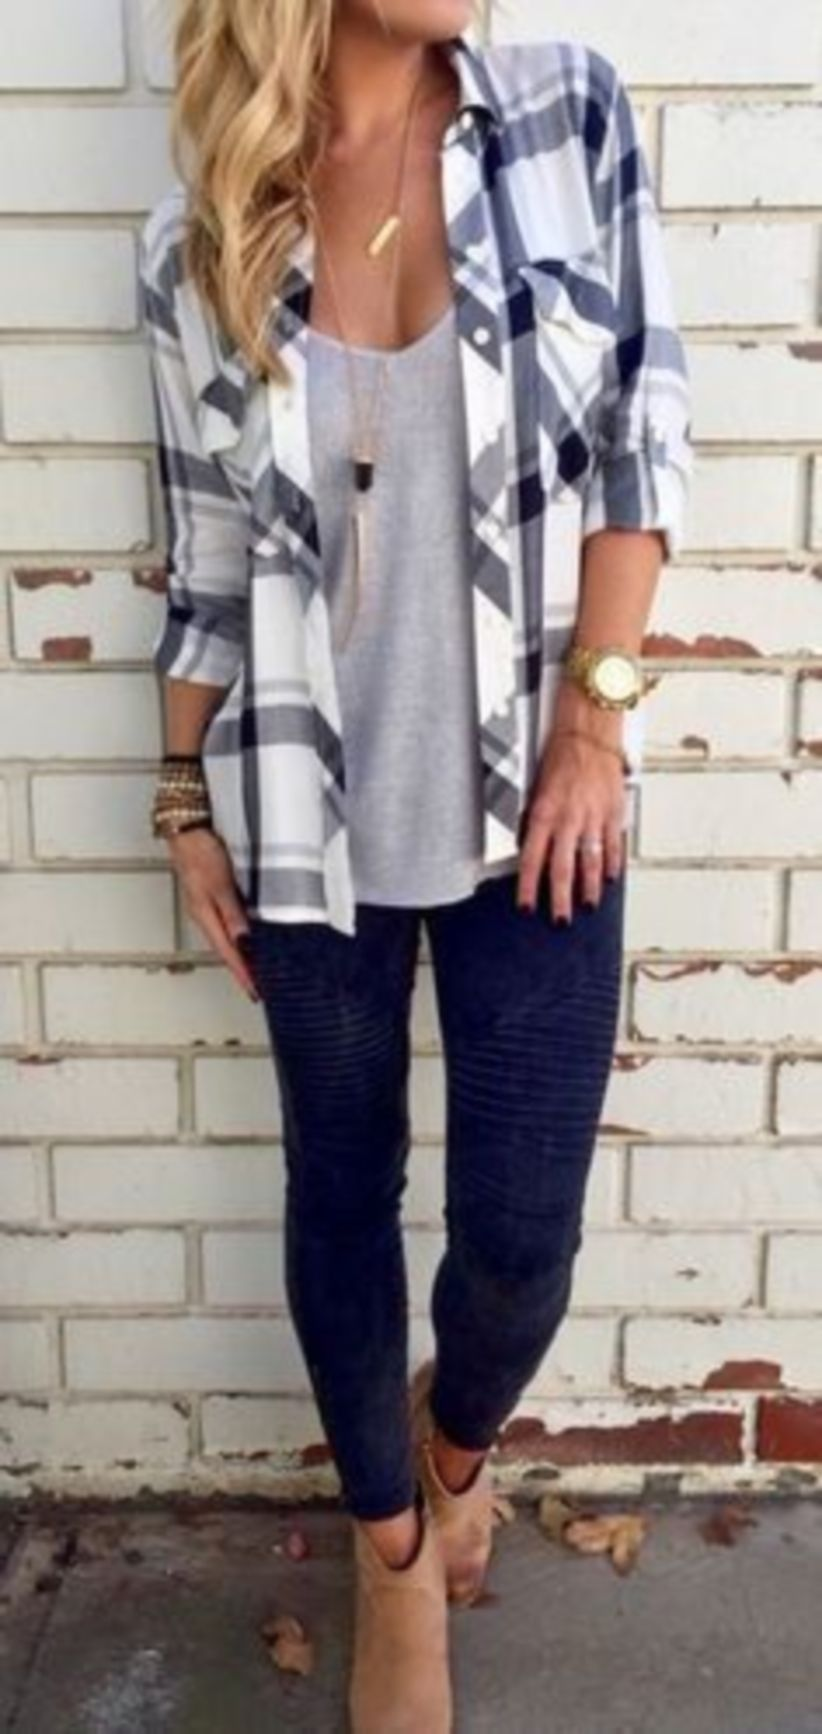 Flannel outfits for women   Awesome Flannel Outfit Ideas for Fall   cloths  Pinterest